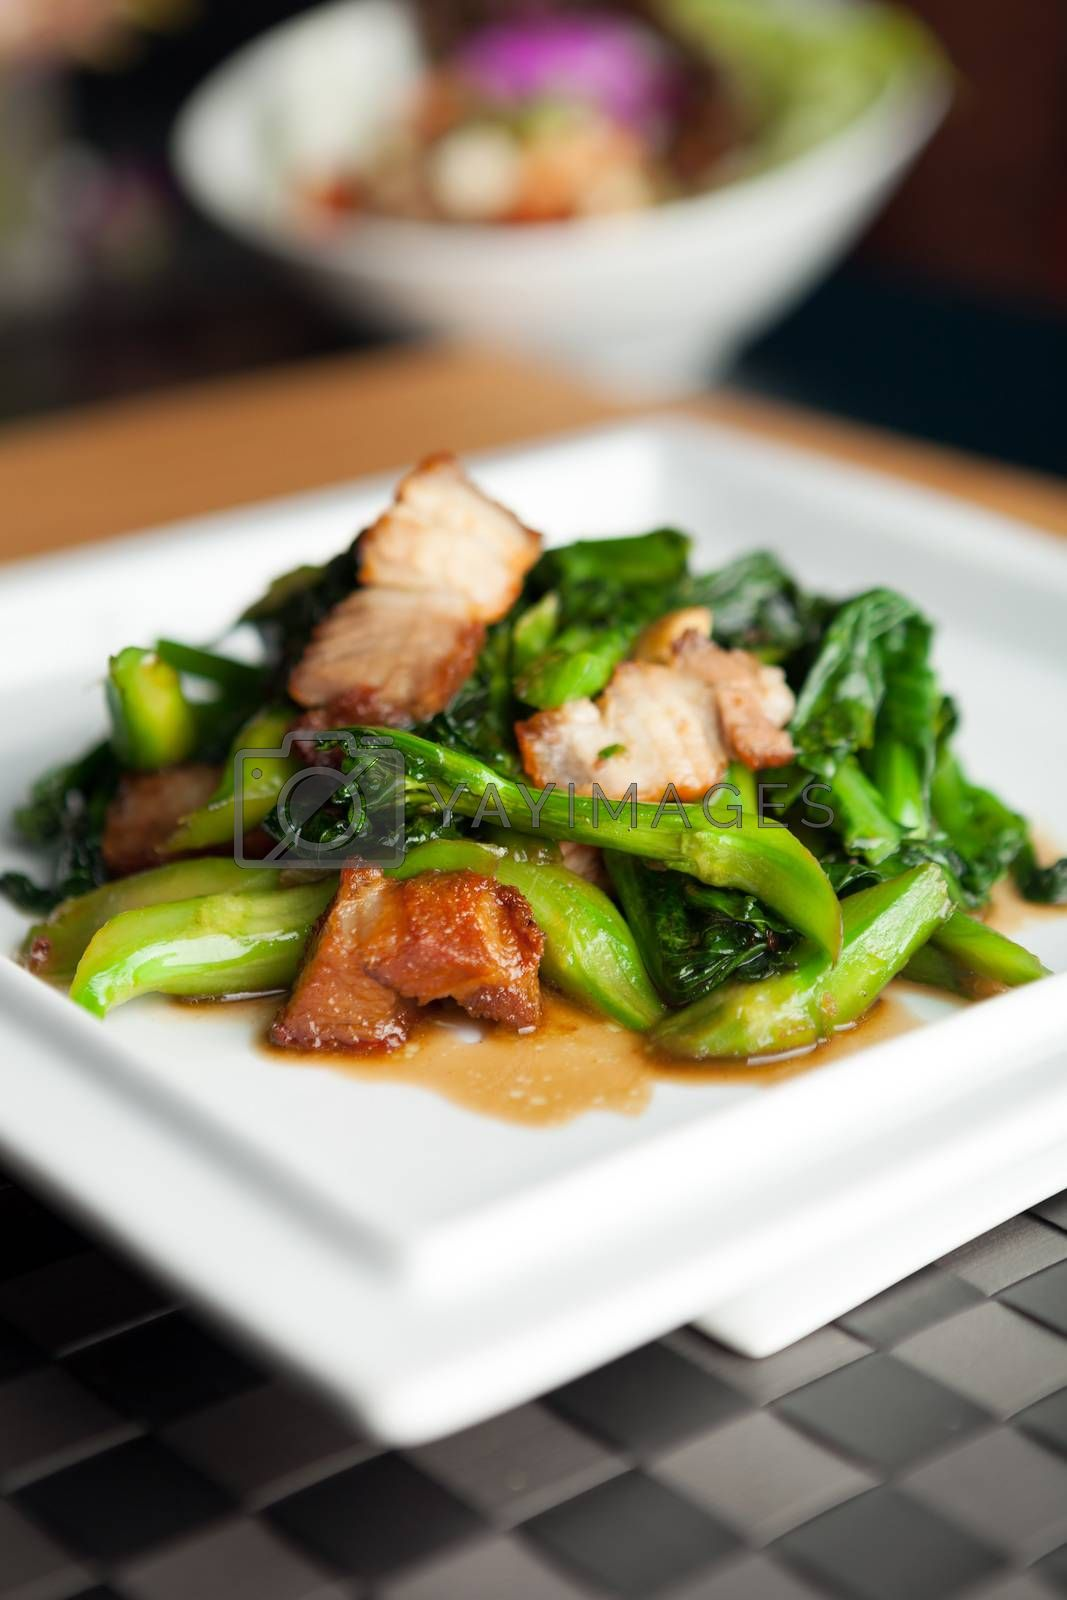 Thai style crispy pork dish with Chinese broccoli.  Shallow depth of field.